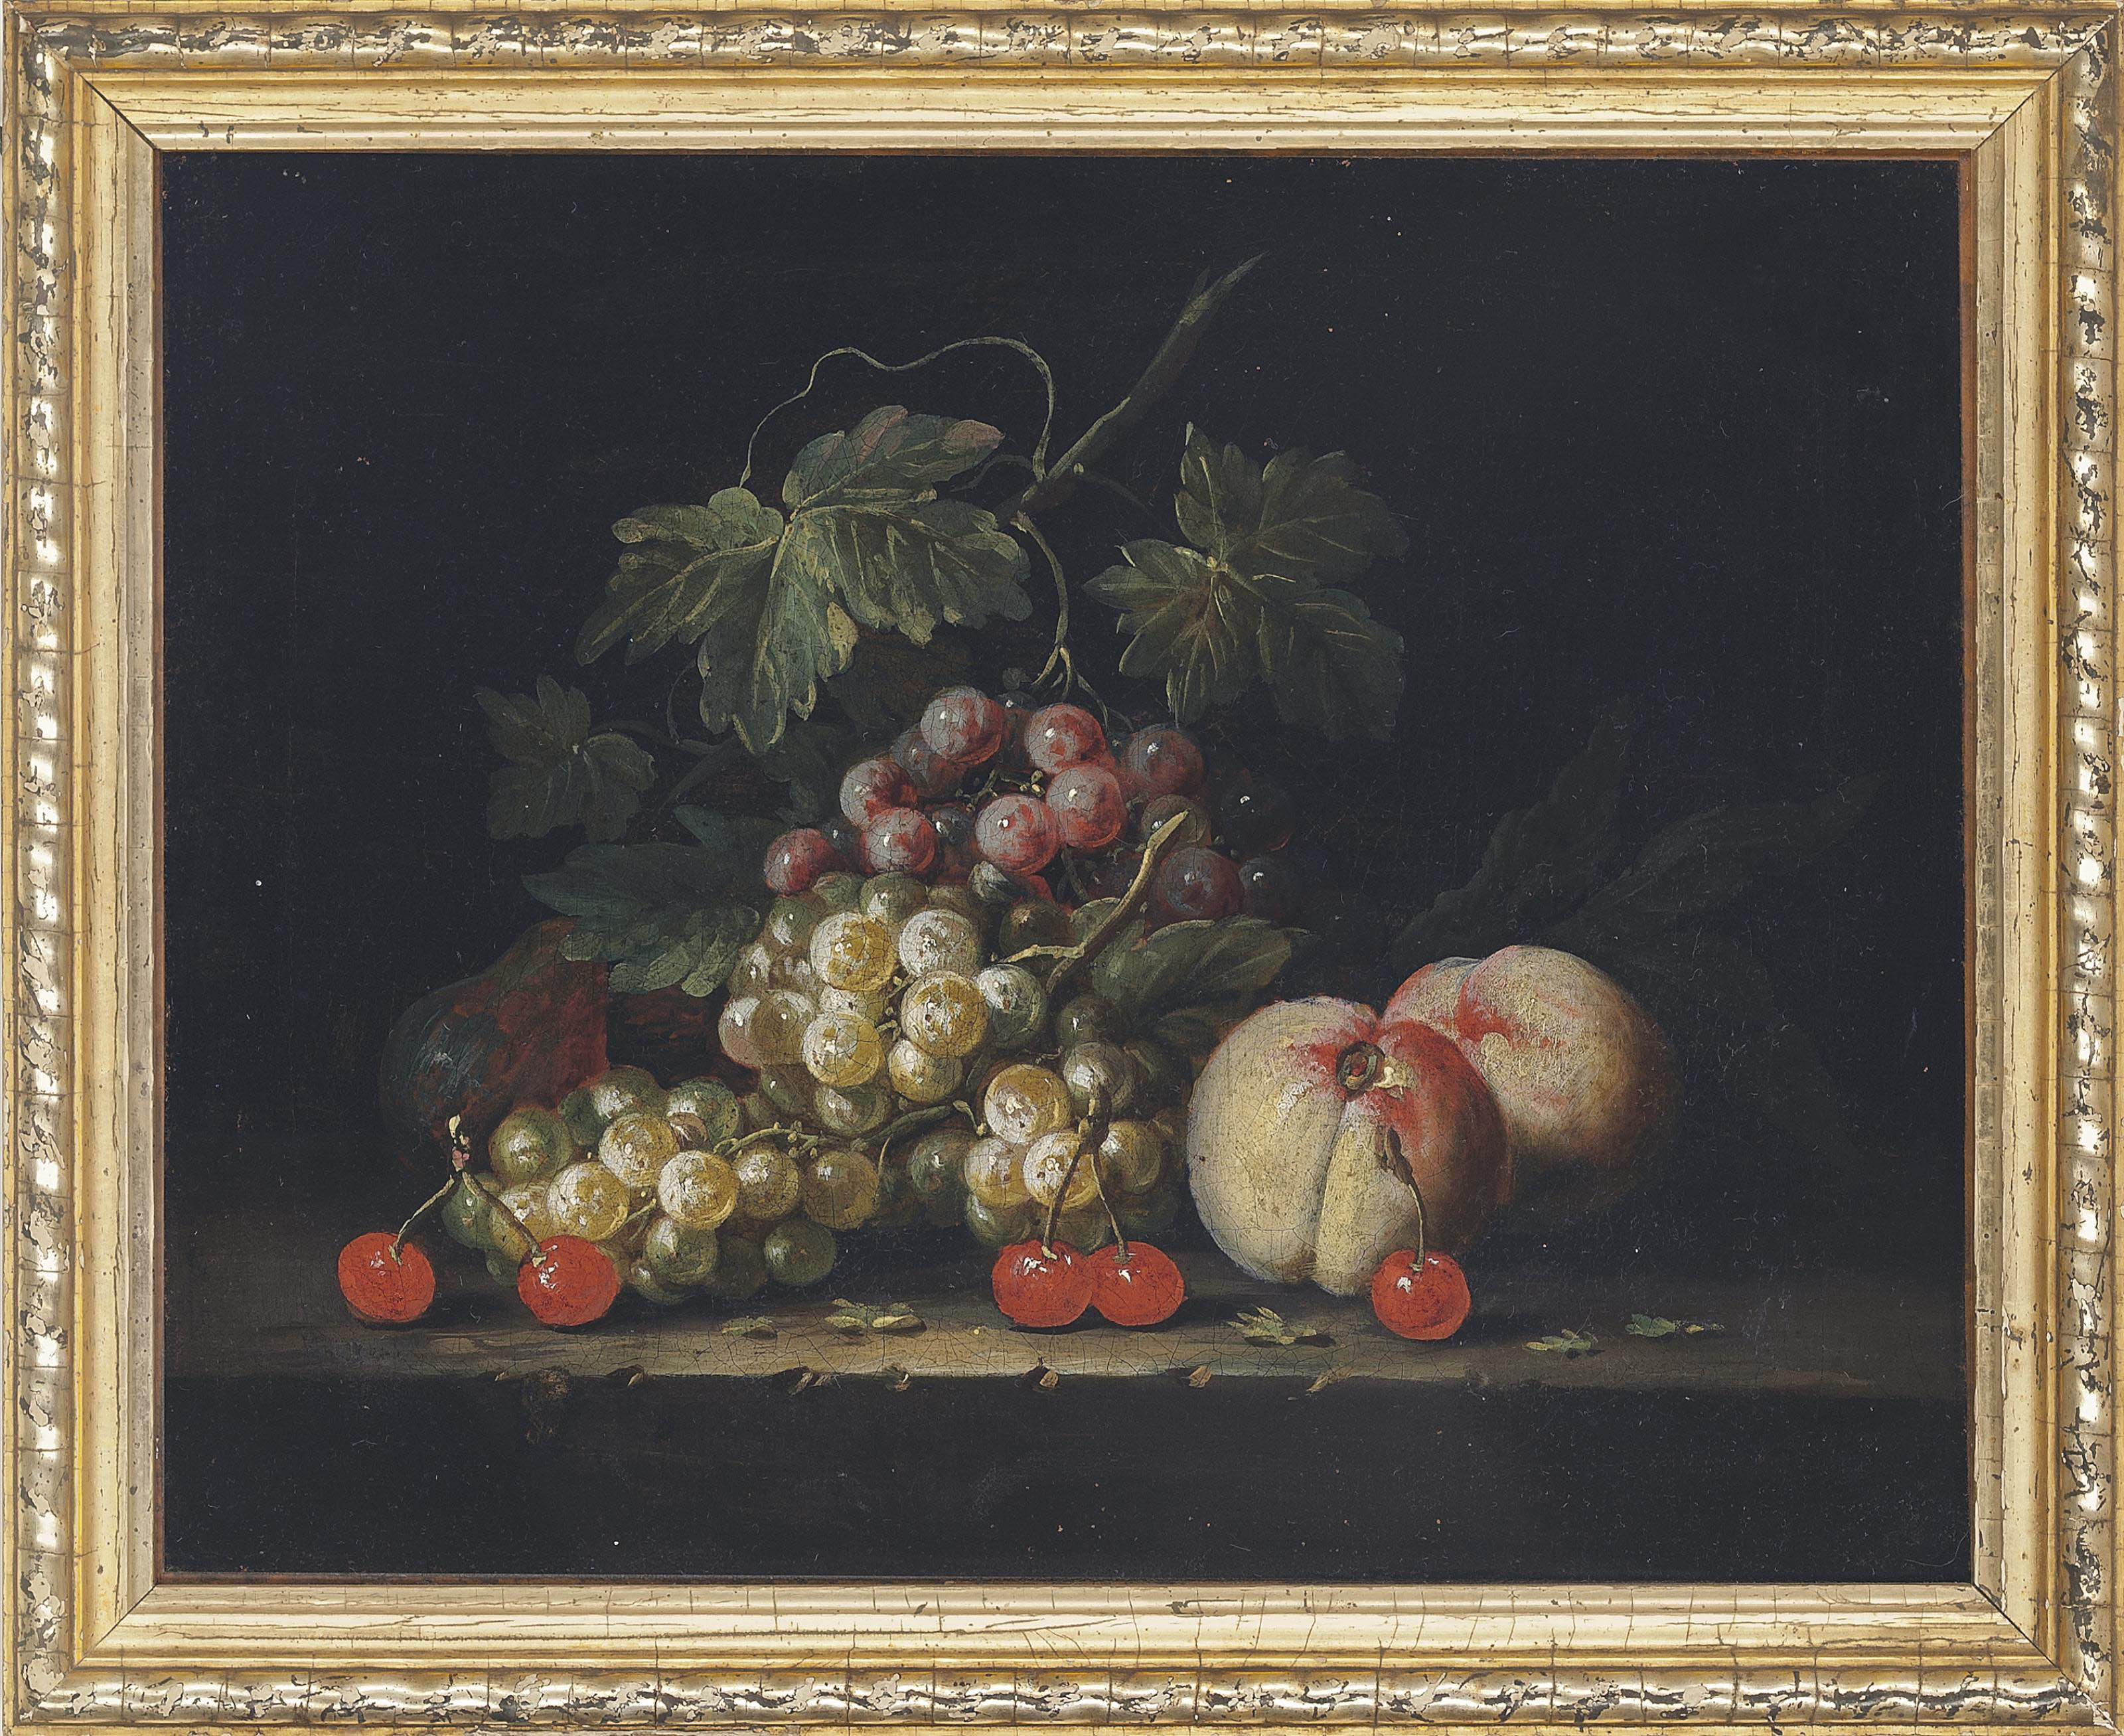 Grapes, peaches and cherries on a stone ledge